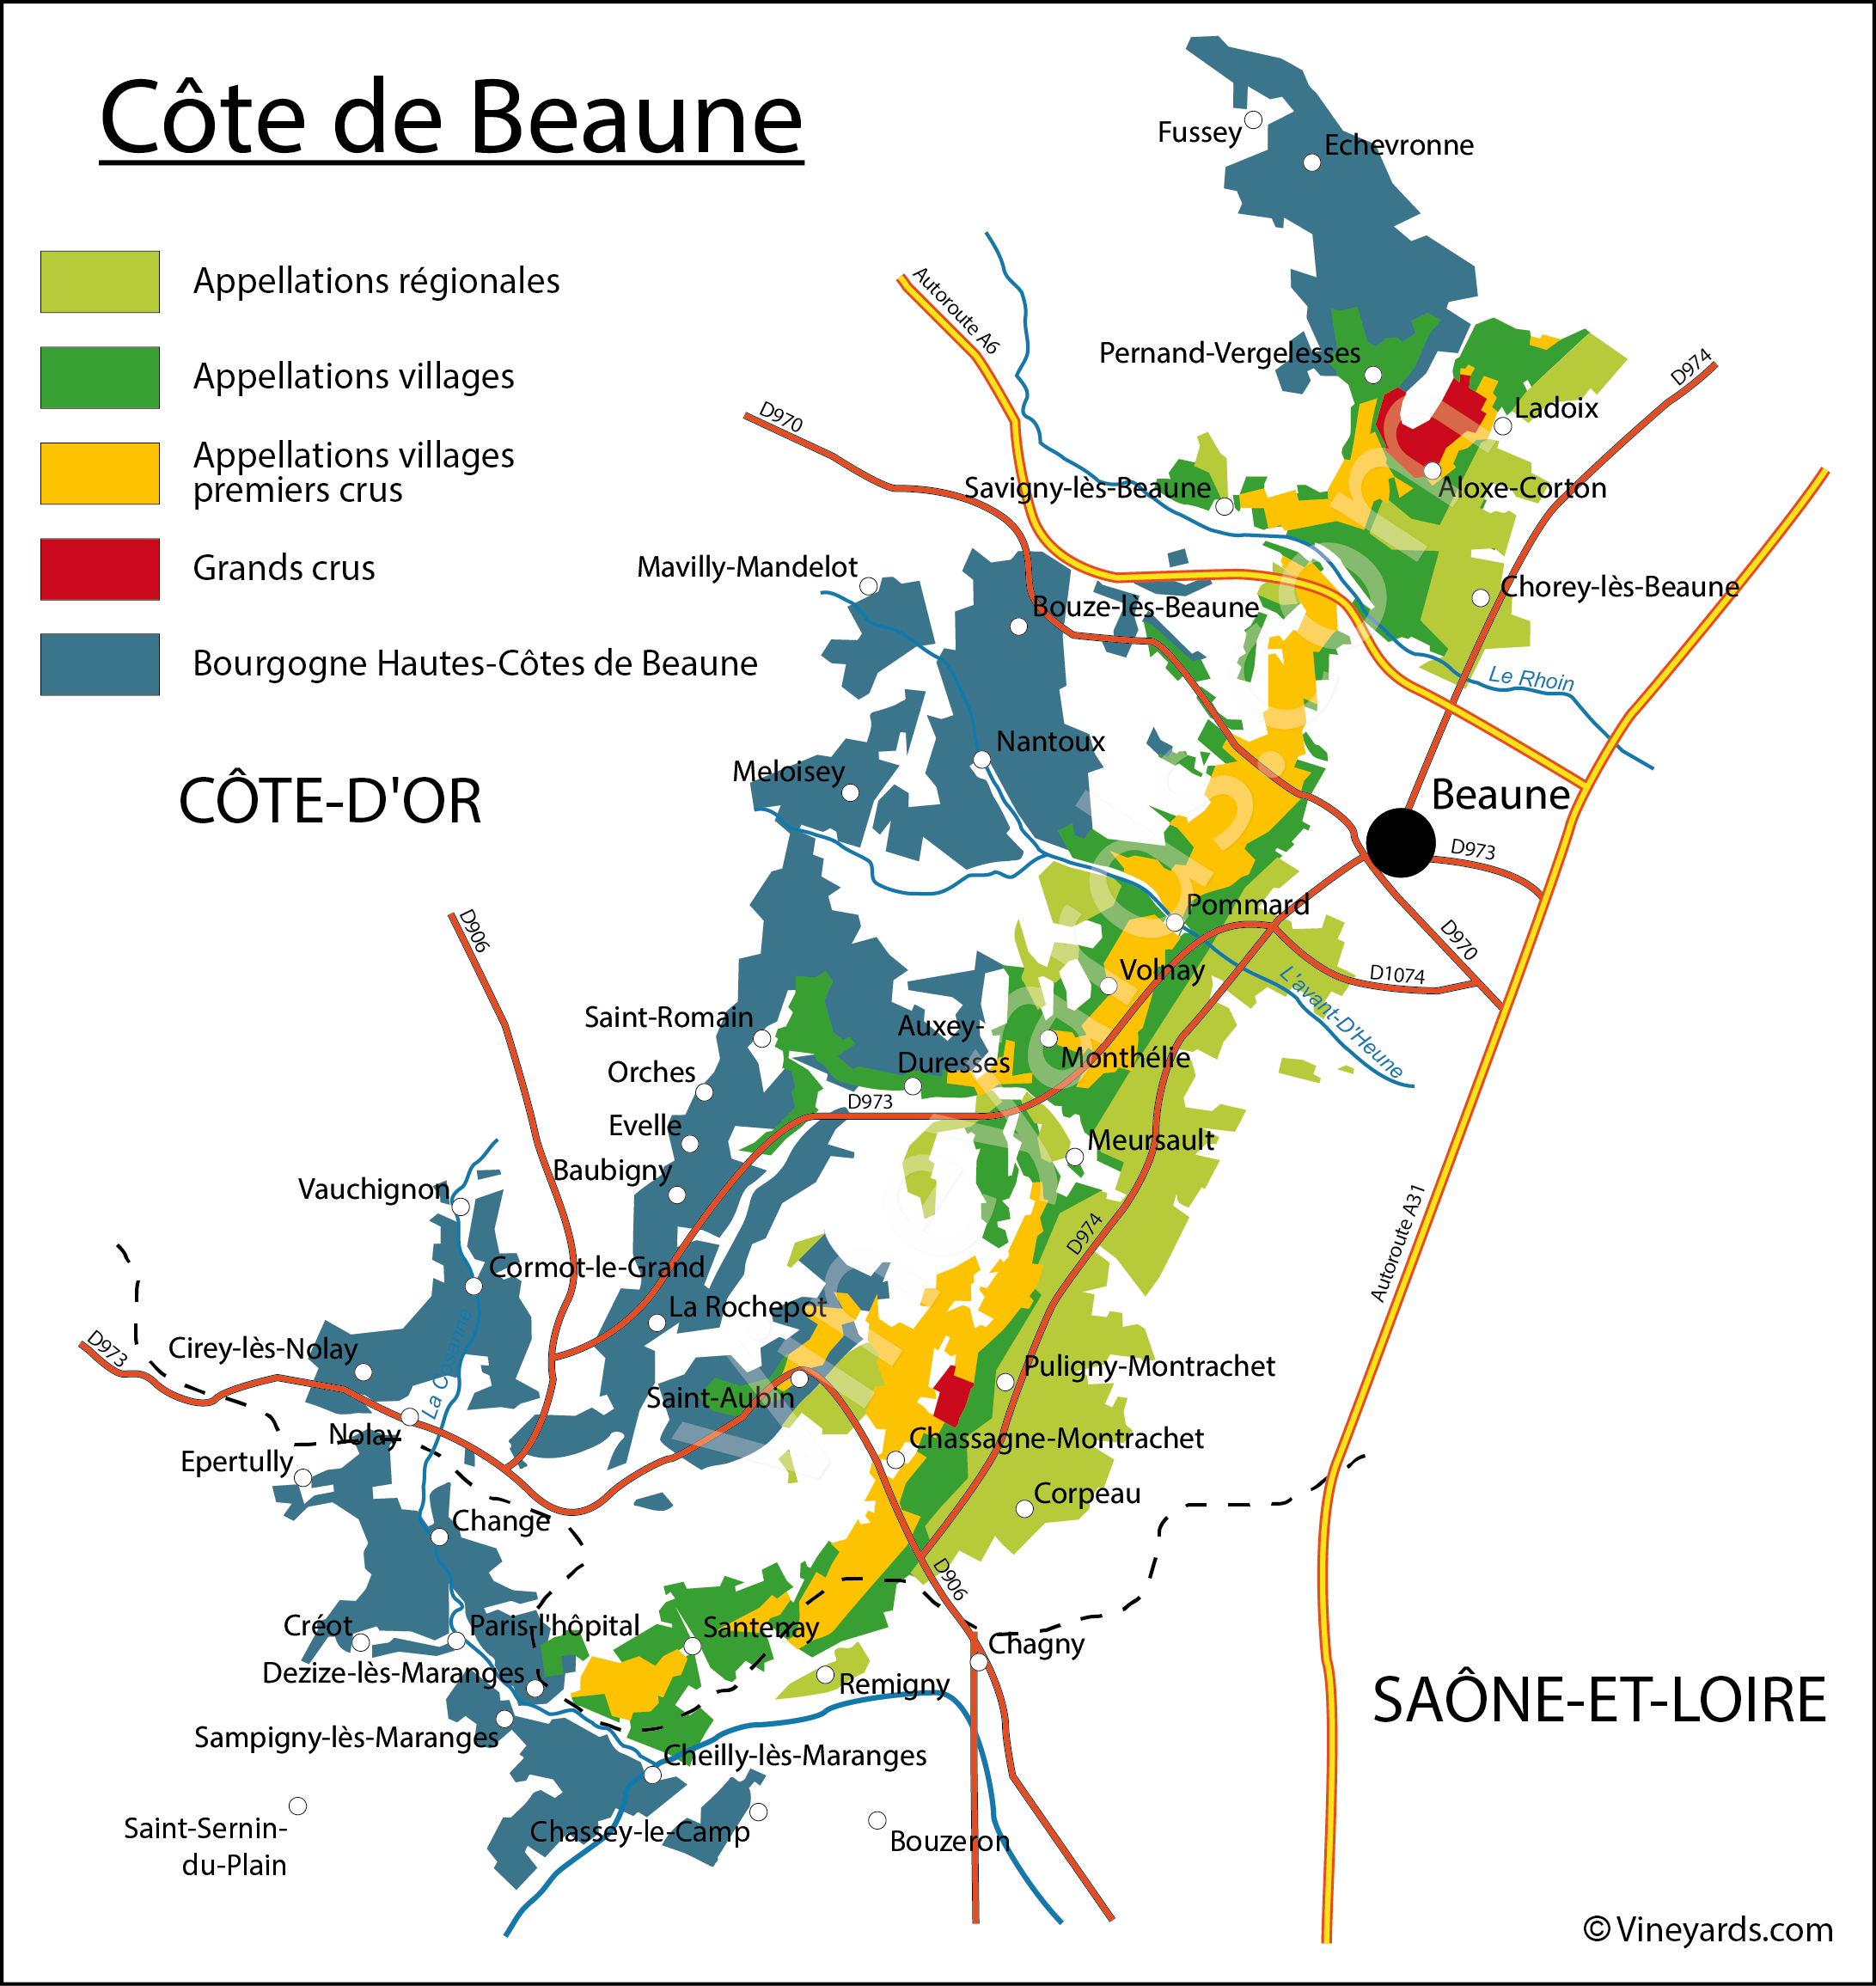 Wine Regions in Côte de Beaune